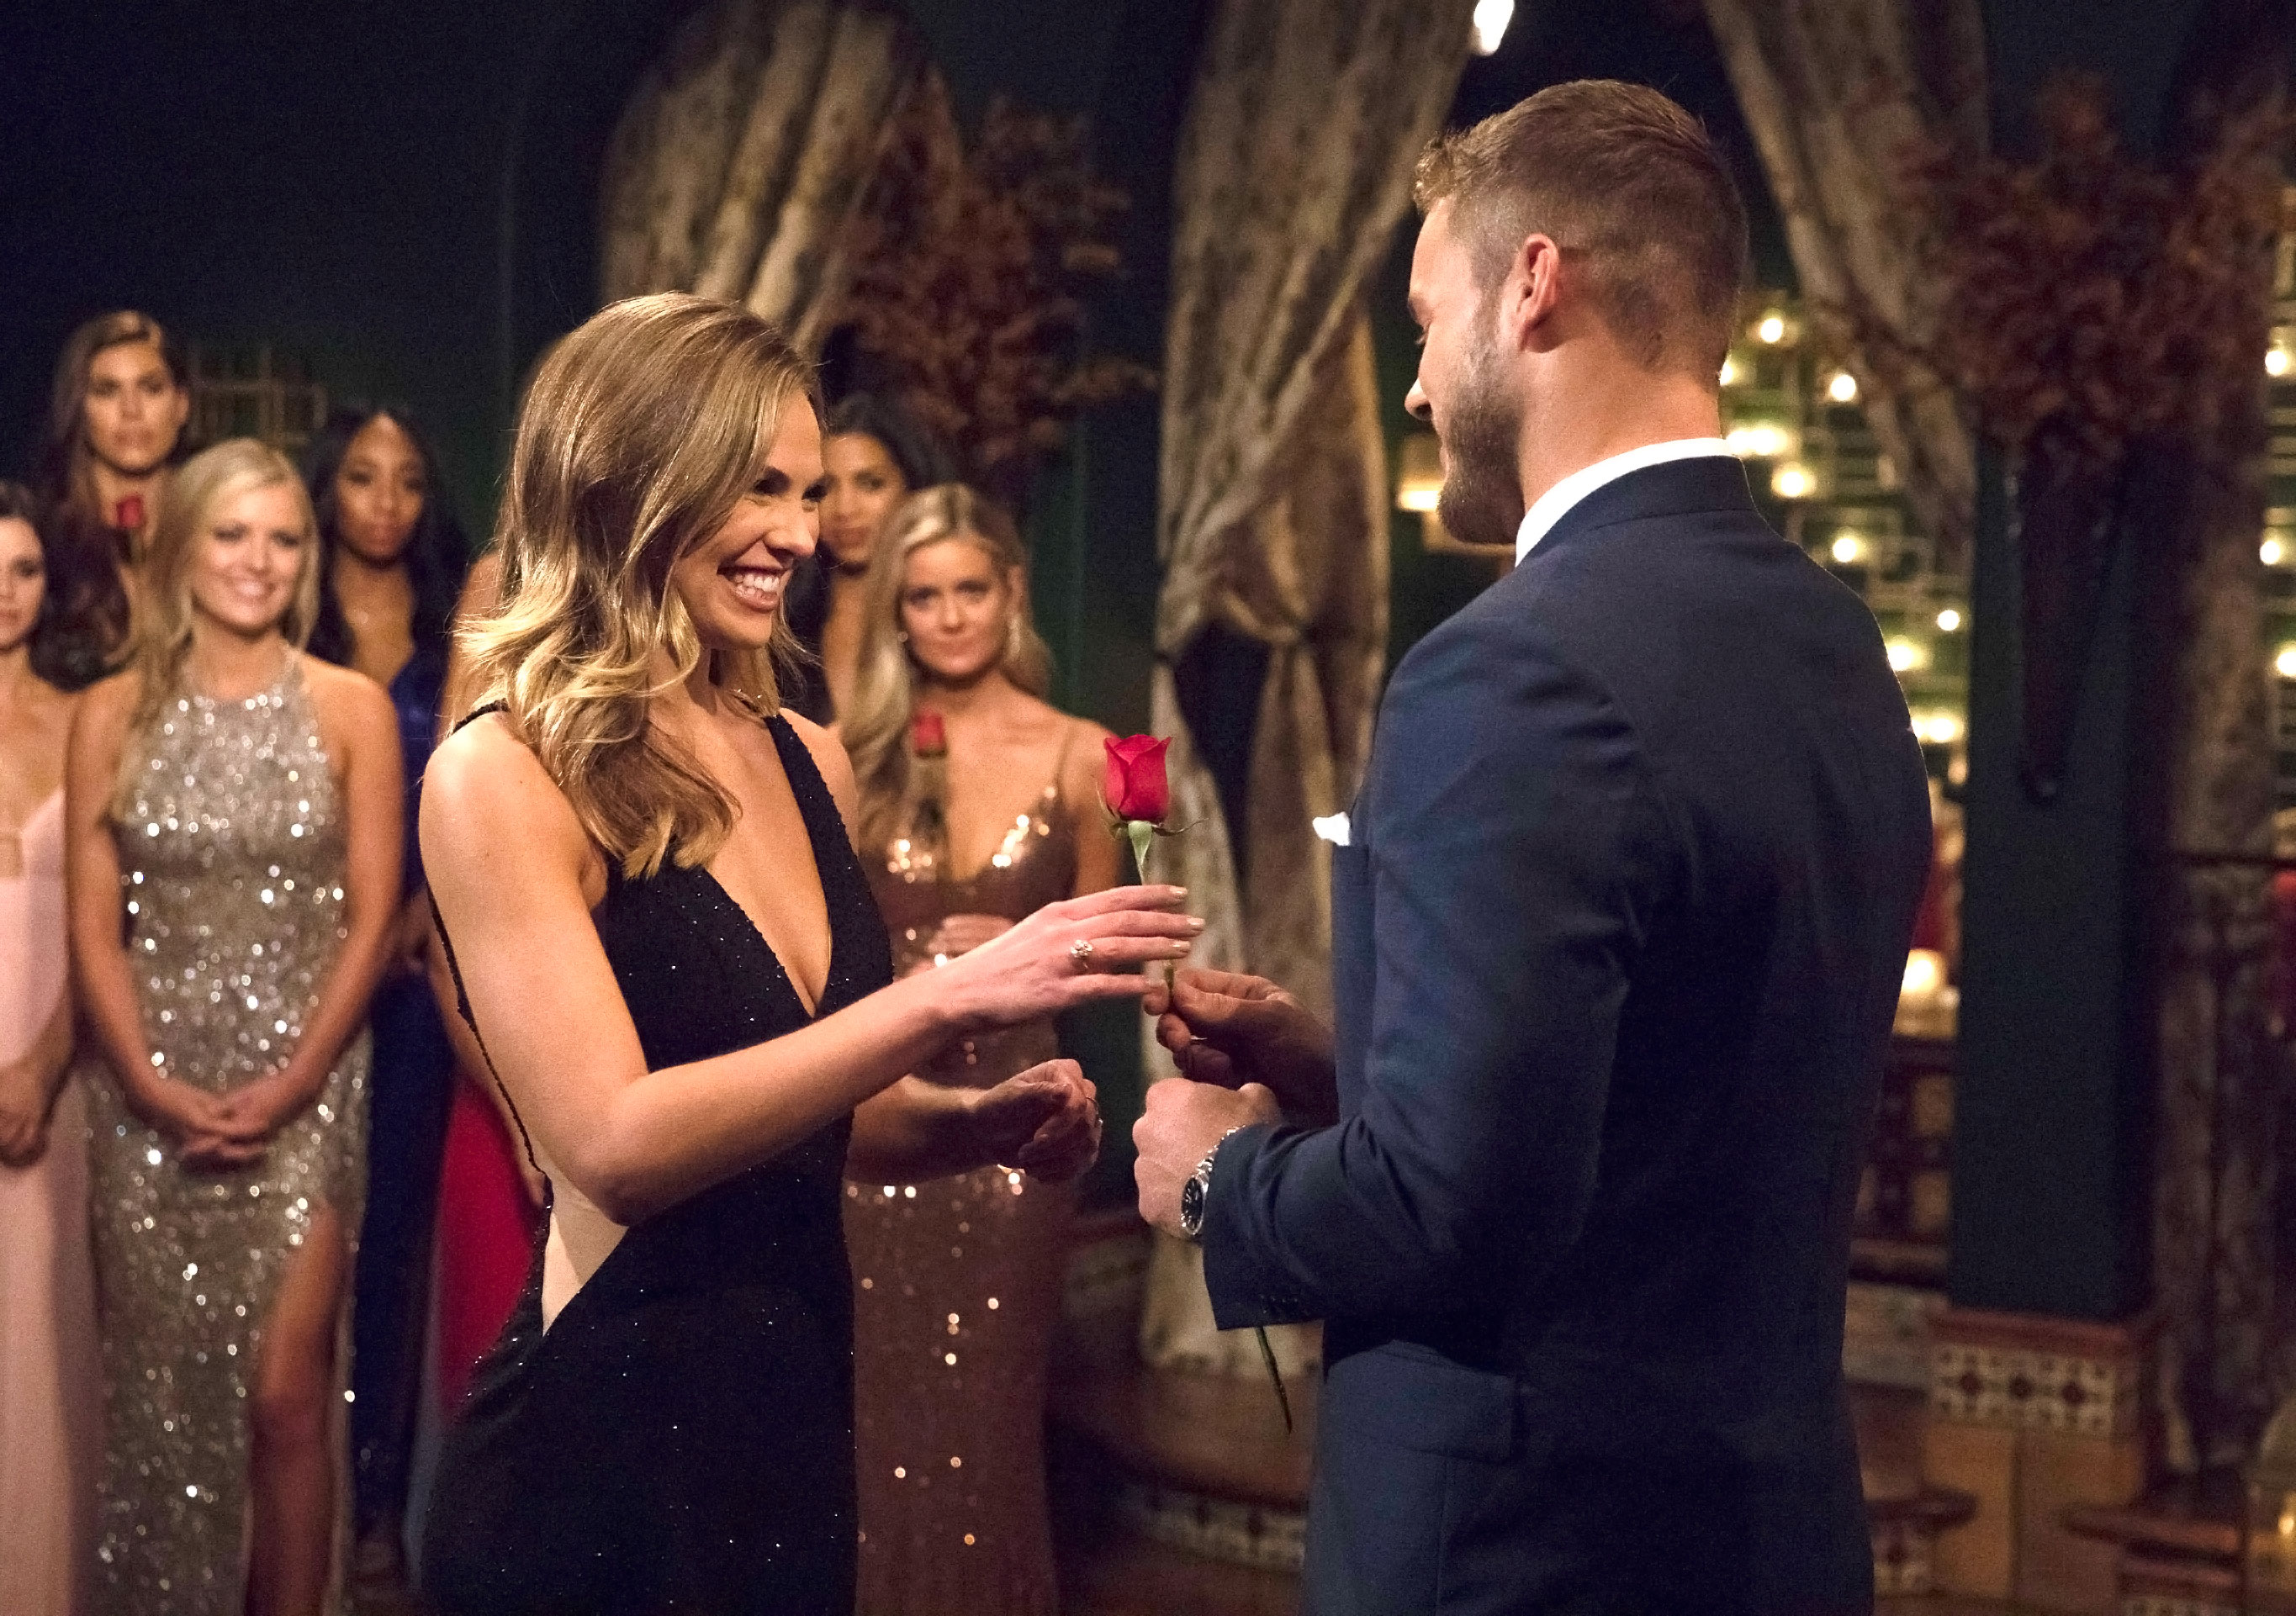 Colton Underwood Calls The Bachelorette Frontrunner Jed Wyatt Cheating Scandal Messed Up